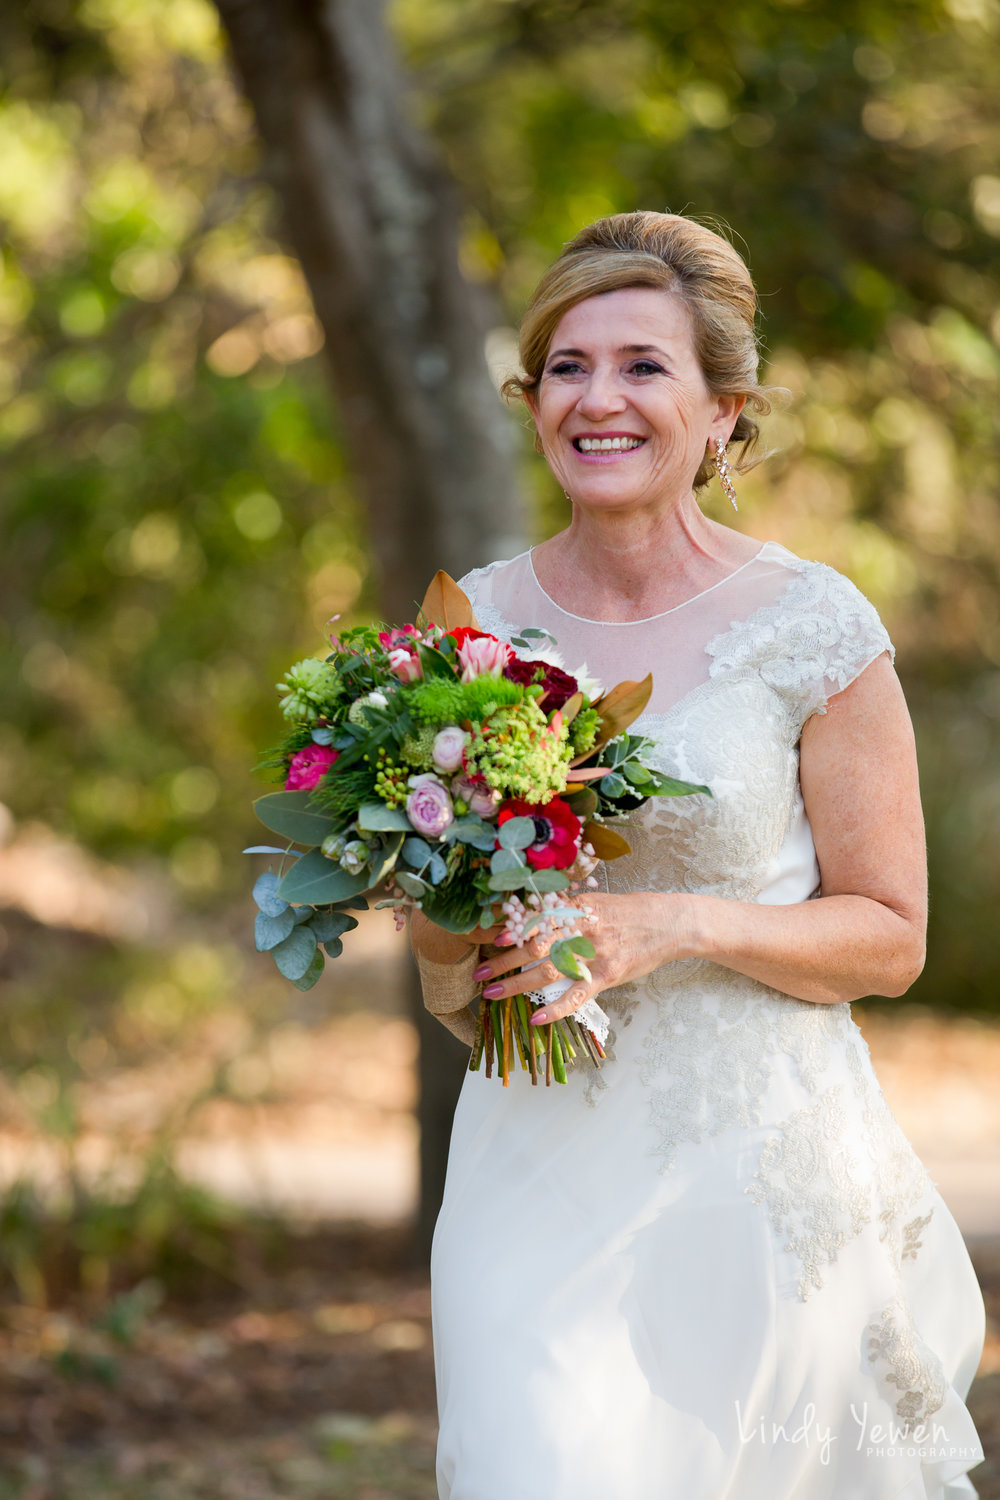 Noosa-Wedding-Photographer-Lindy-Yewen 6.jpg